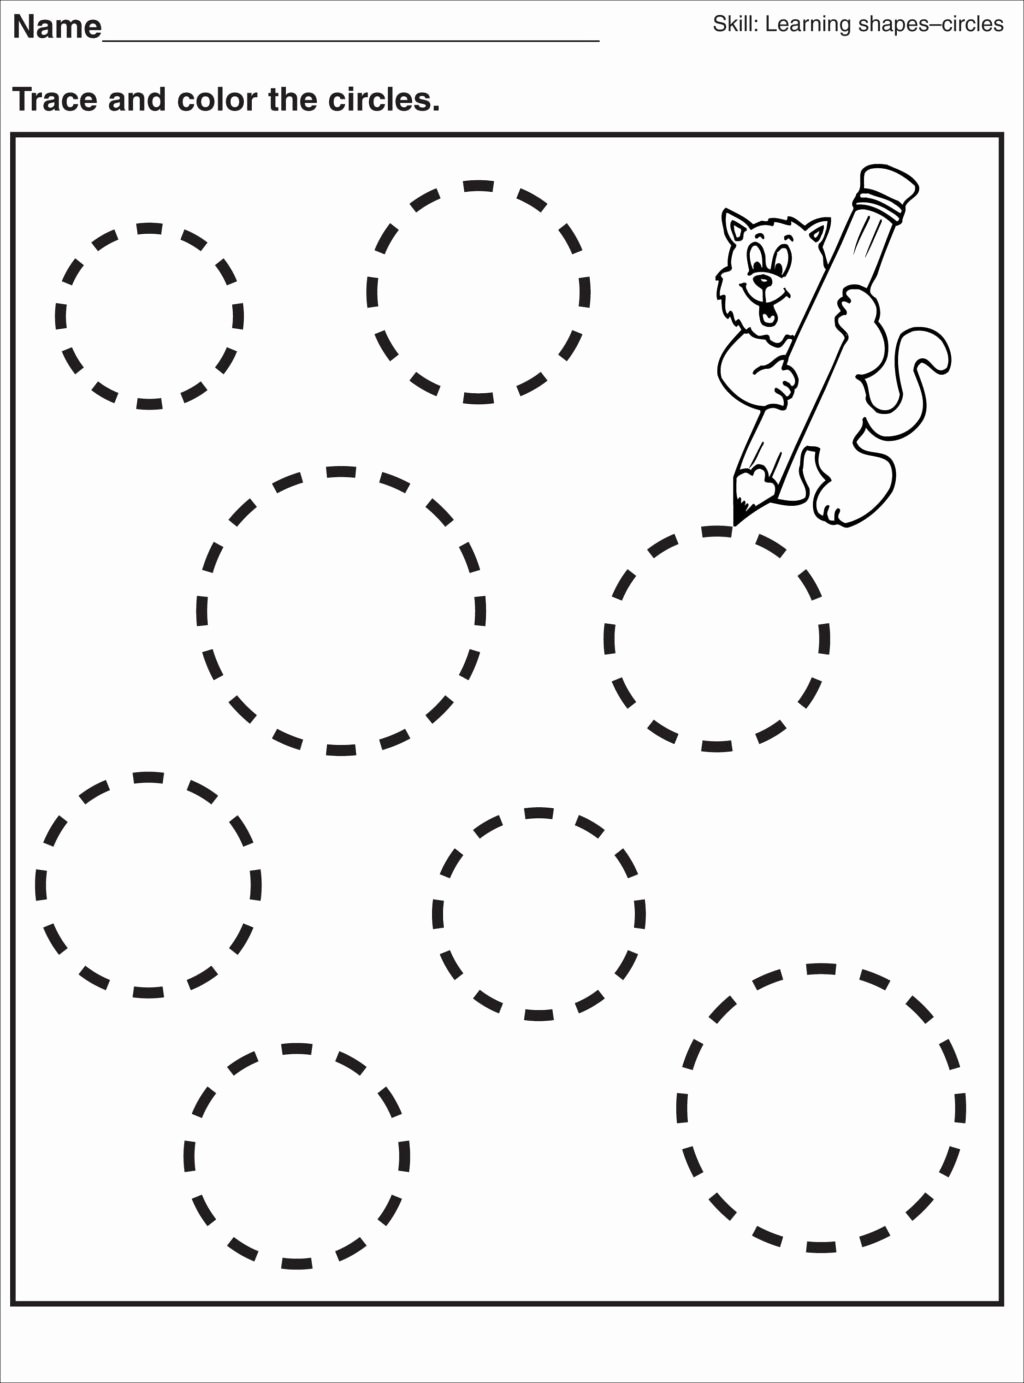 Winter Activities Worksheets for Preschoolers top Math Worksheet Math Worksheet Farm Animal Activity